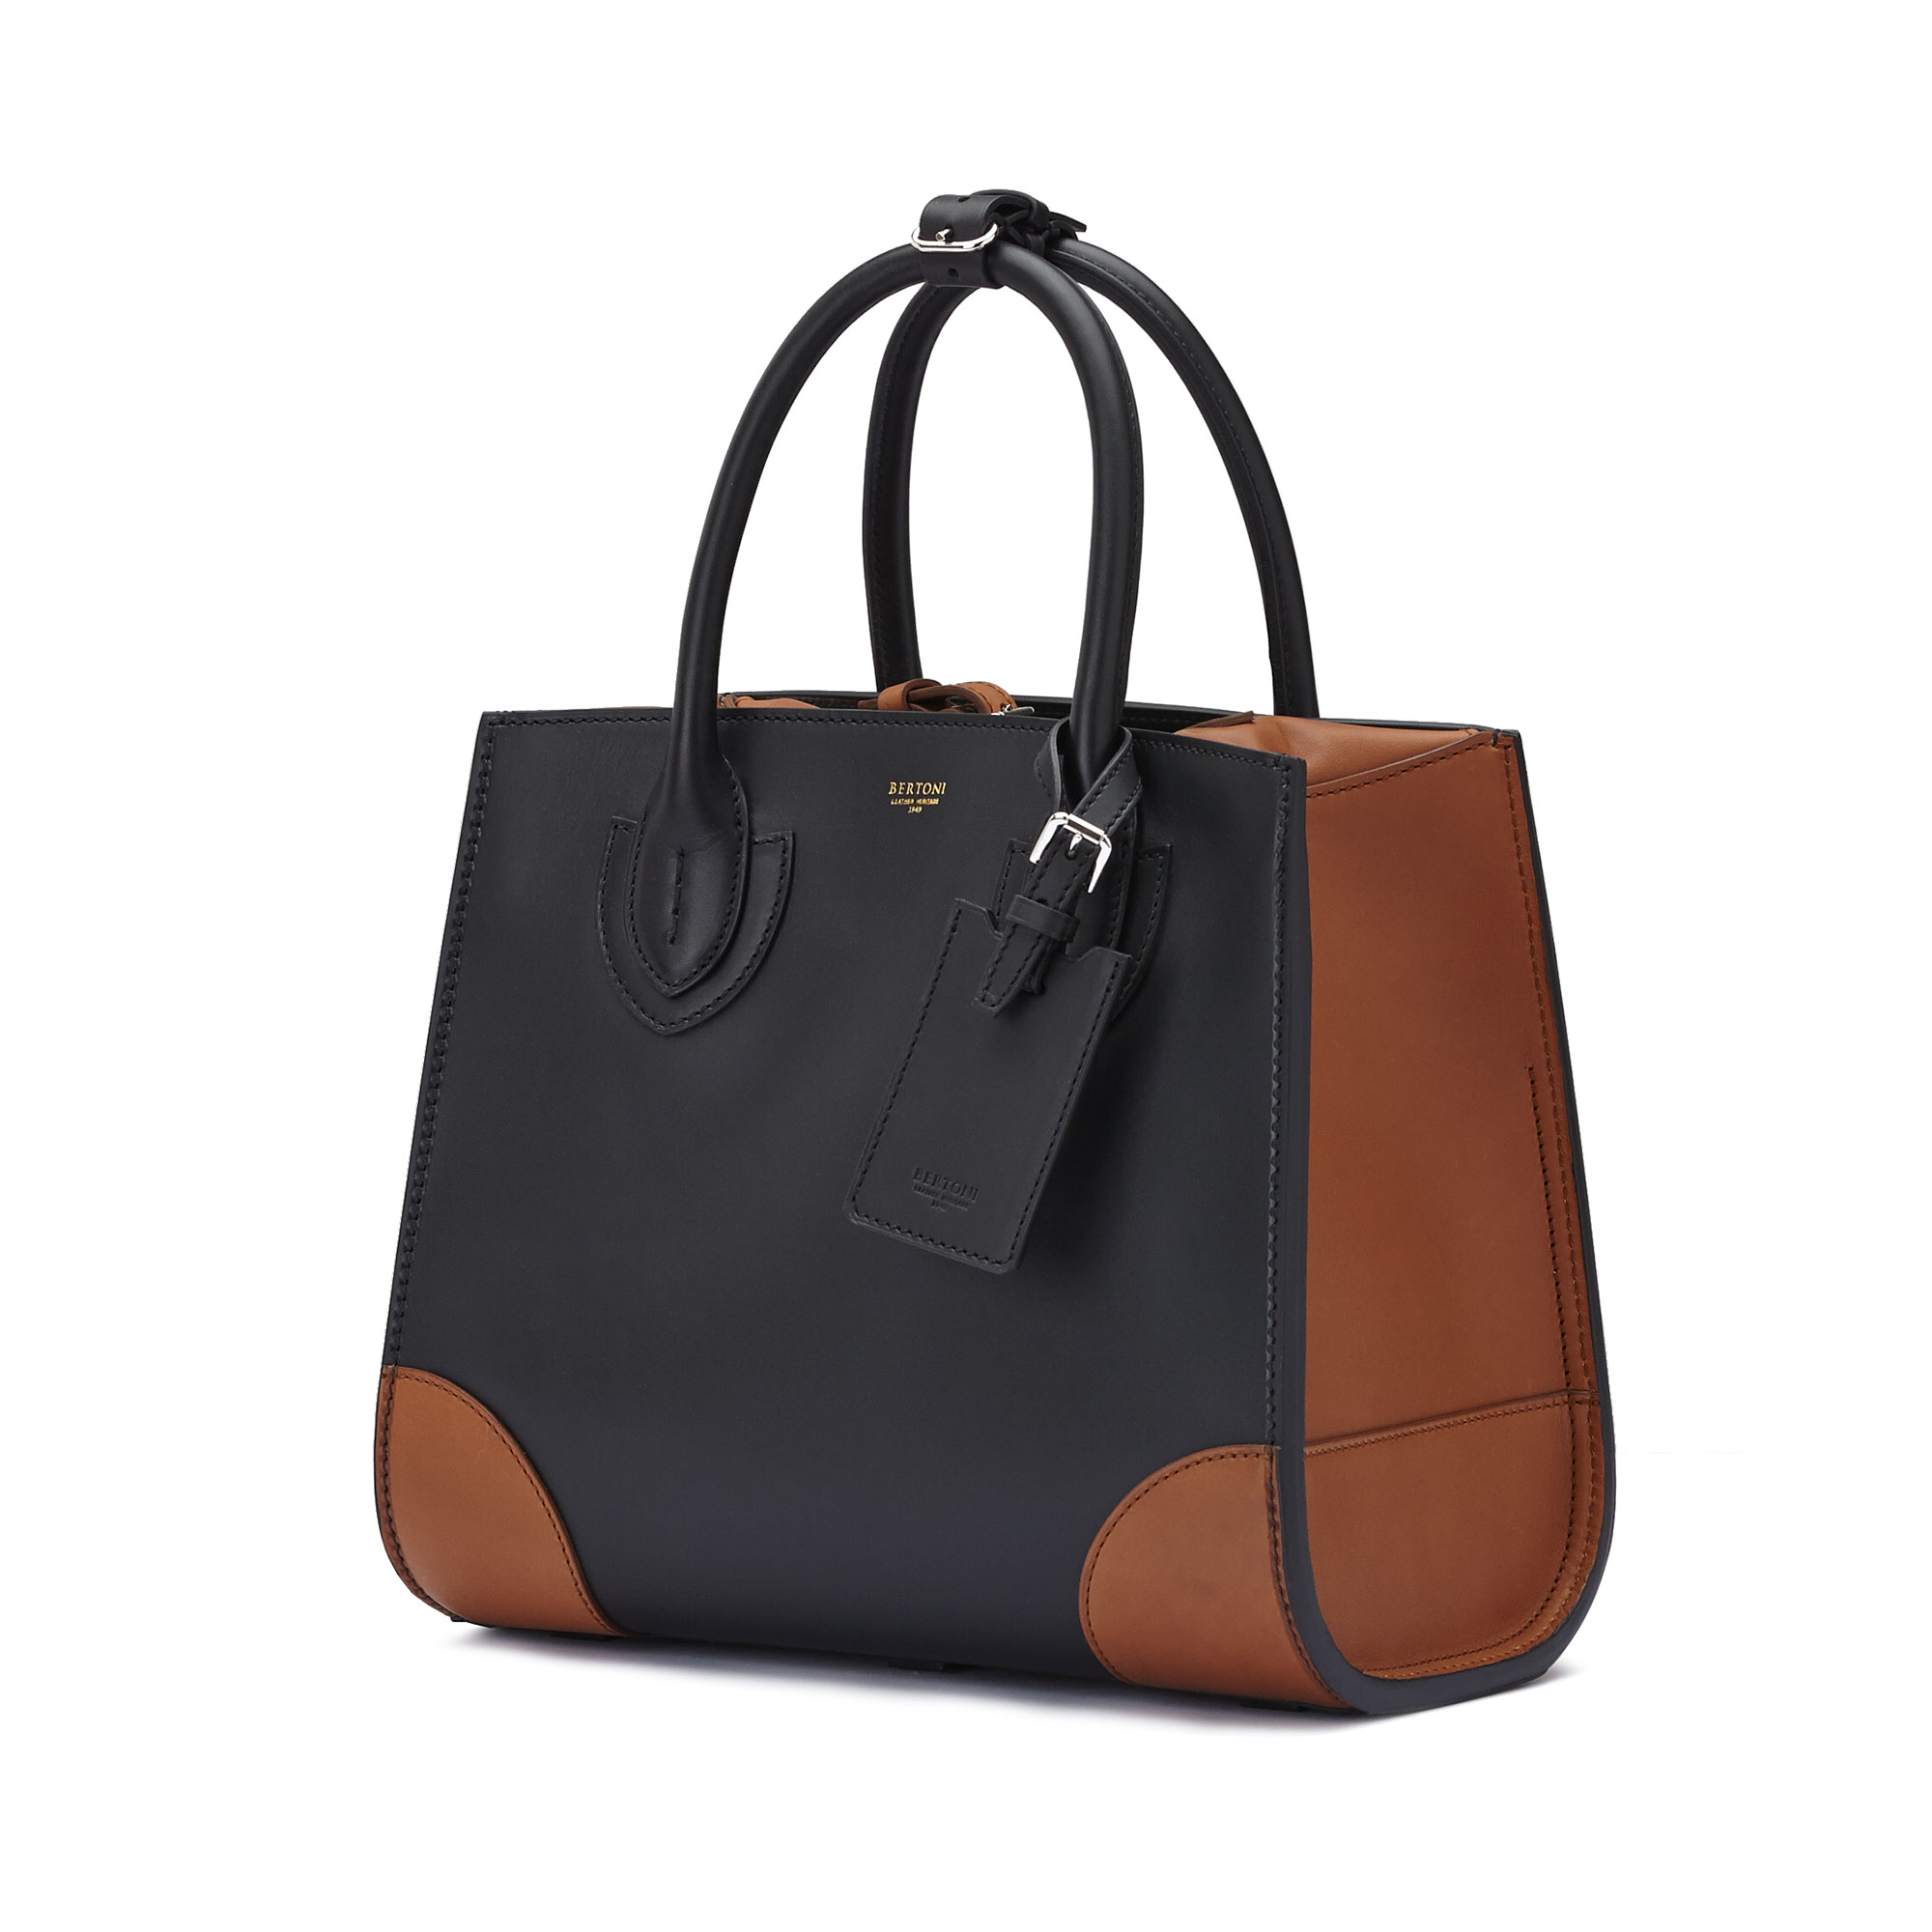 The black terrabruciata french calf Darcy large bag by Bertoni 1949 03